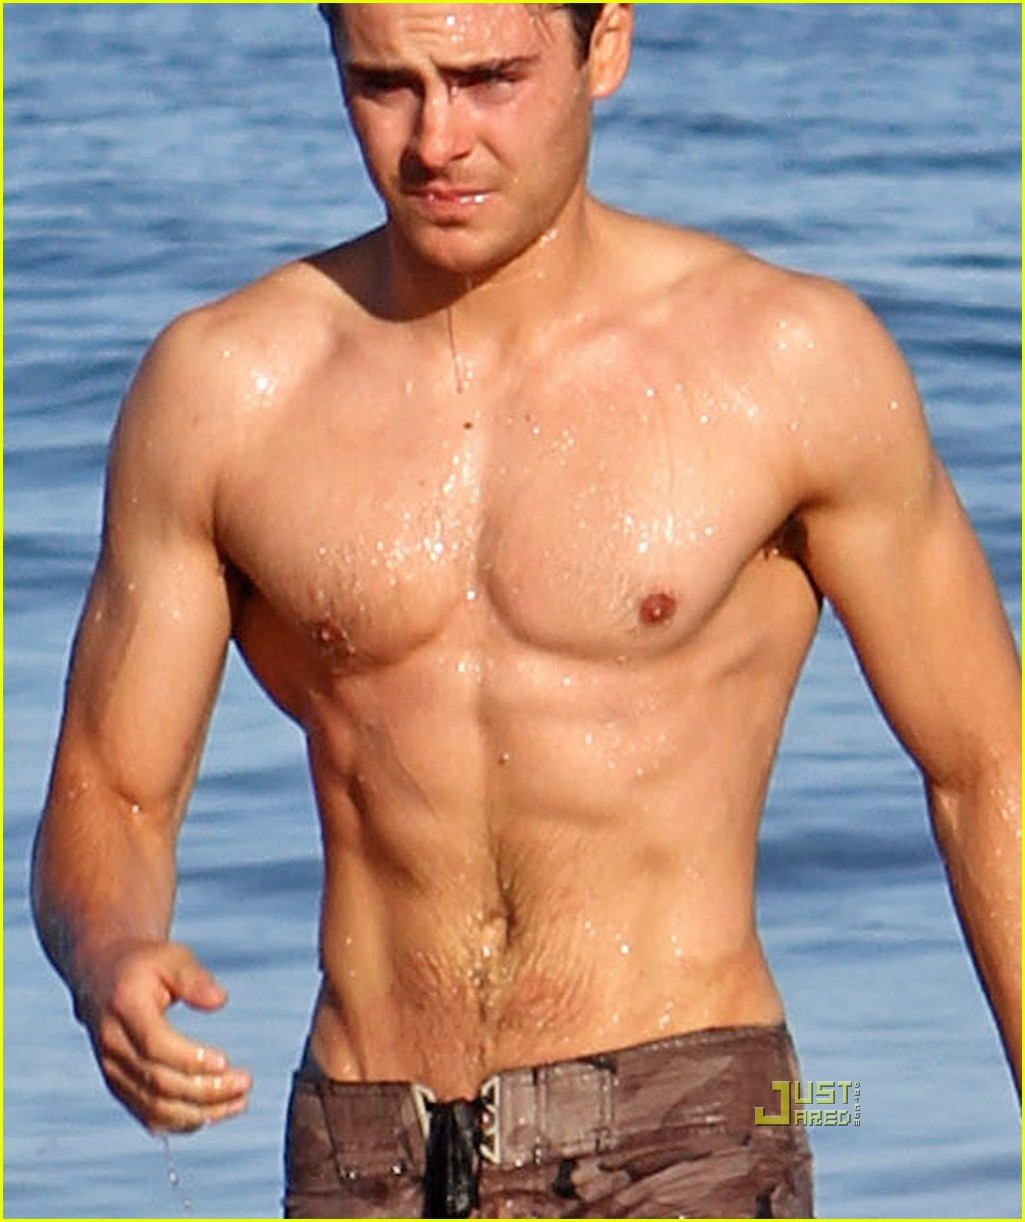 Shirtless Zac Efron Has Better Situation